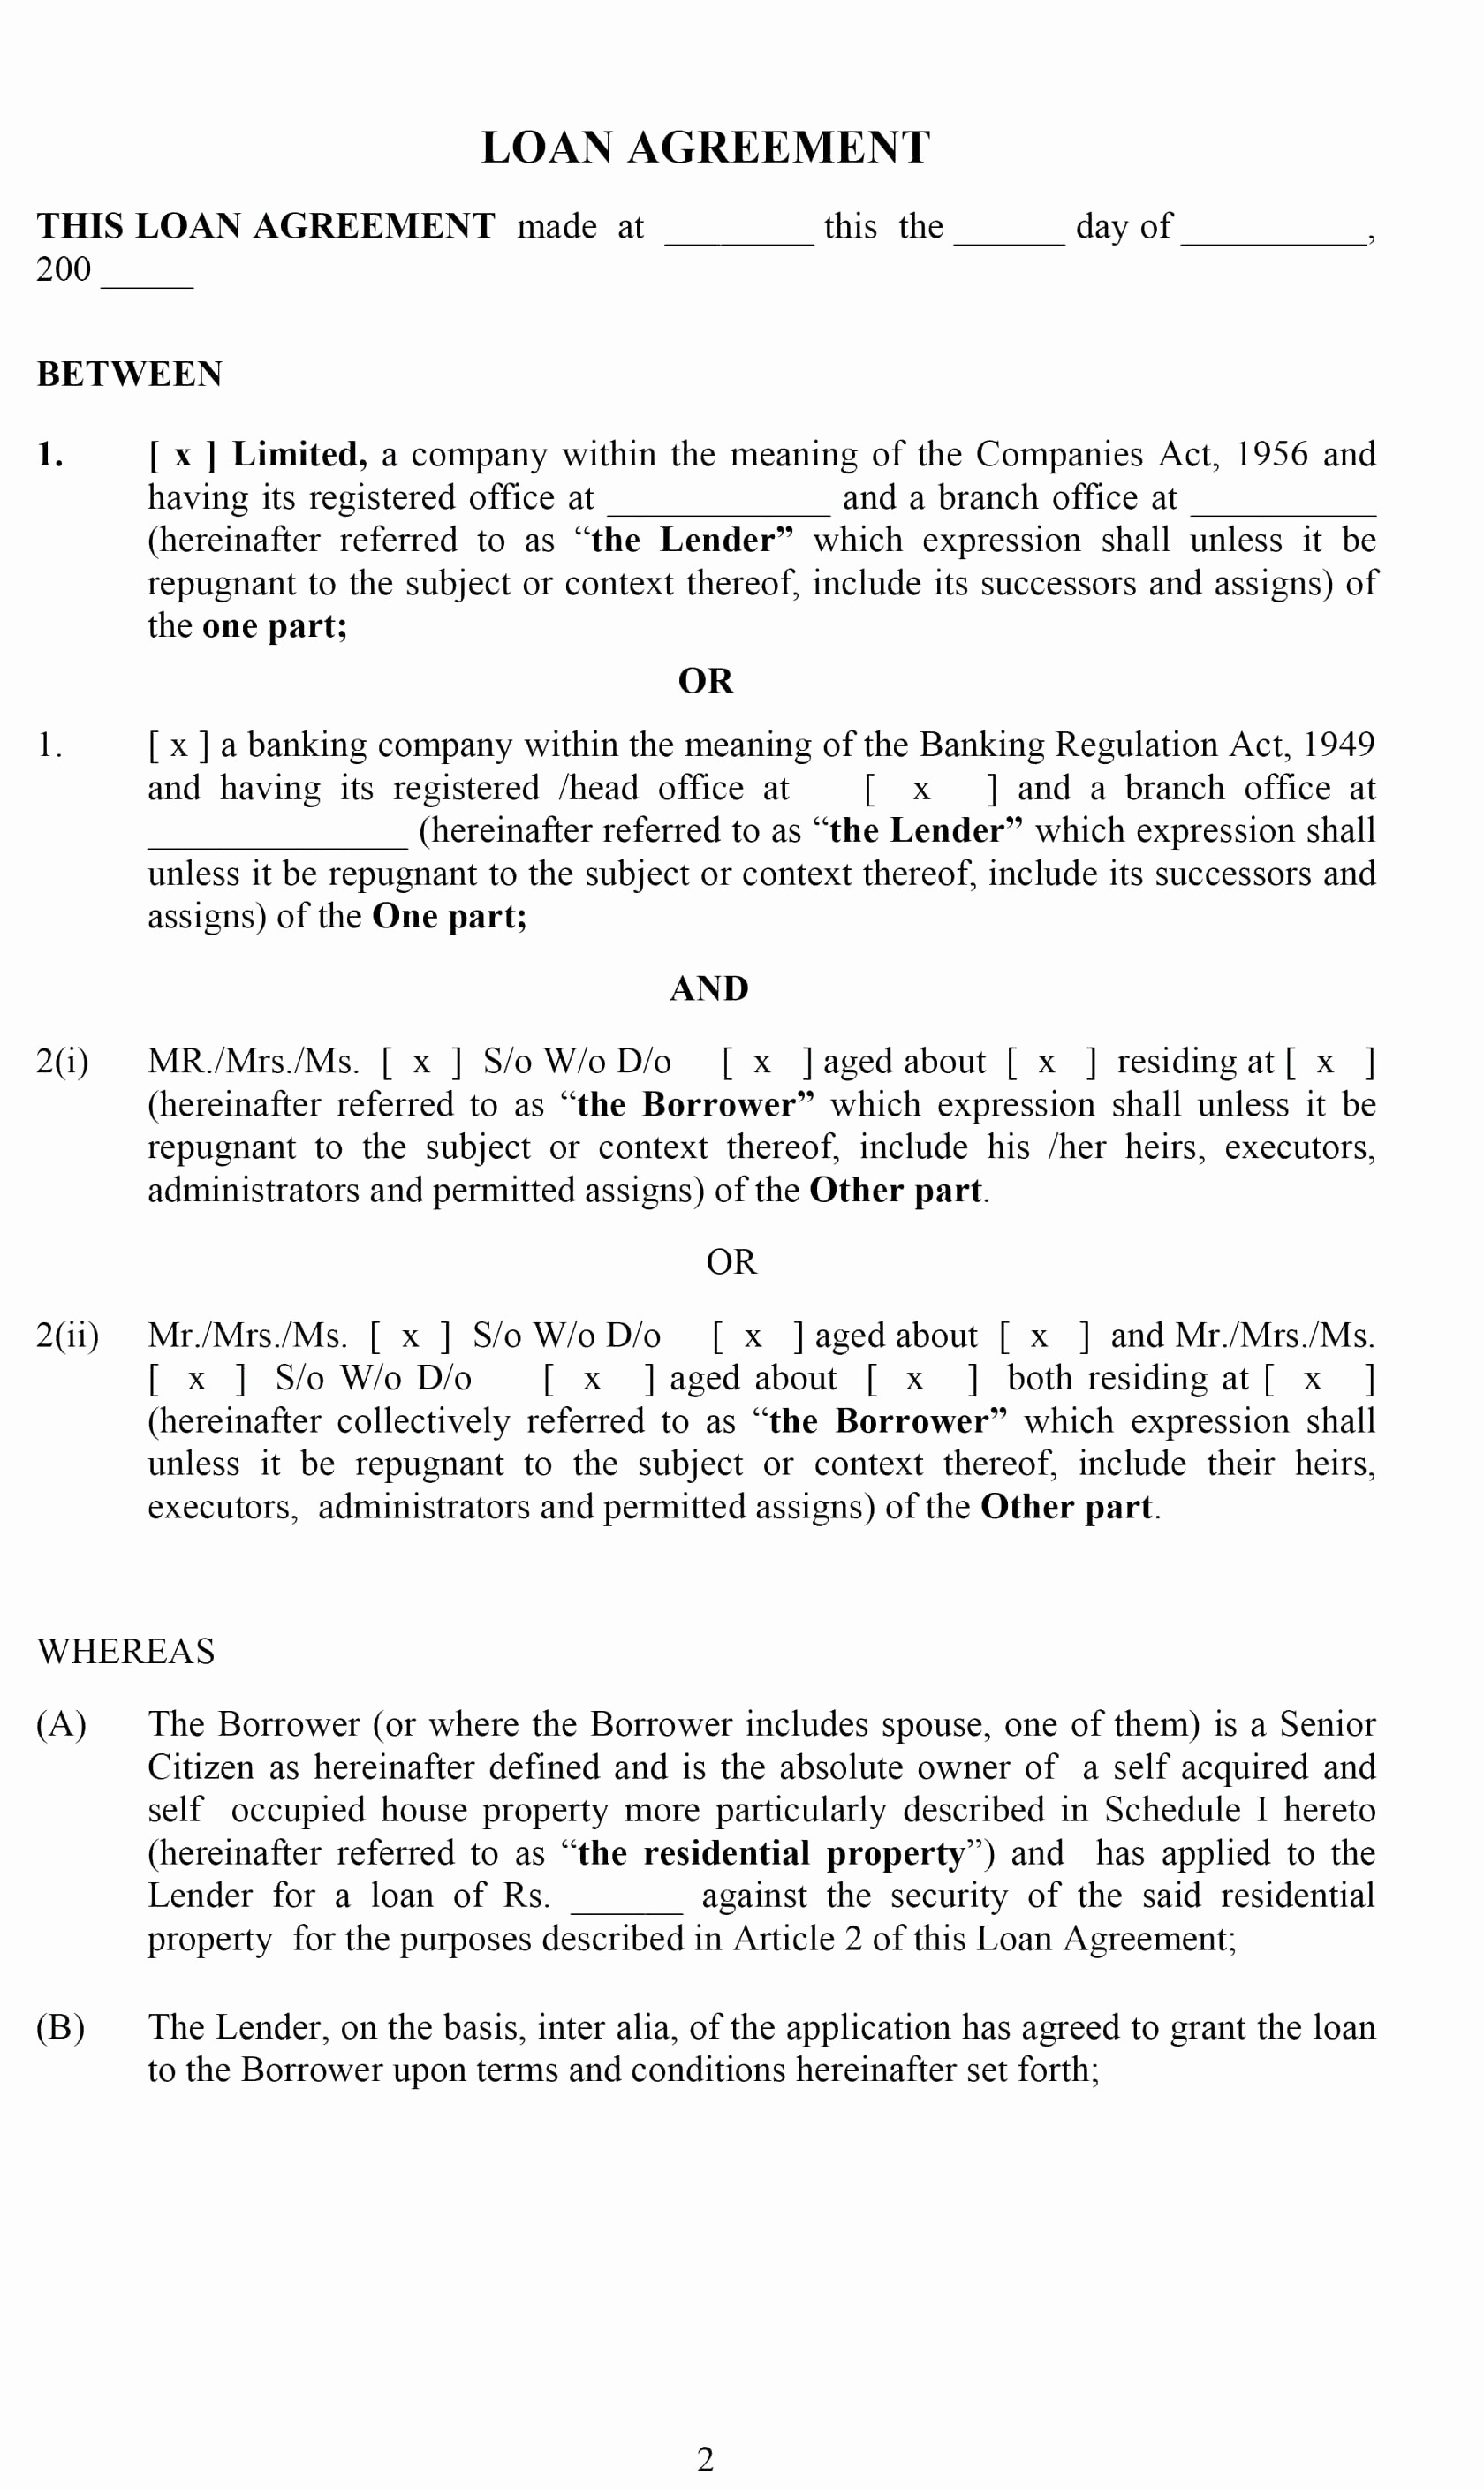 Personal Loan Agreement Letter 014 Personal Loan Agreement Template Ideas Letter Format For Fromany